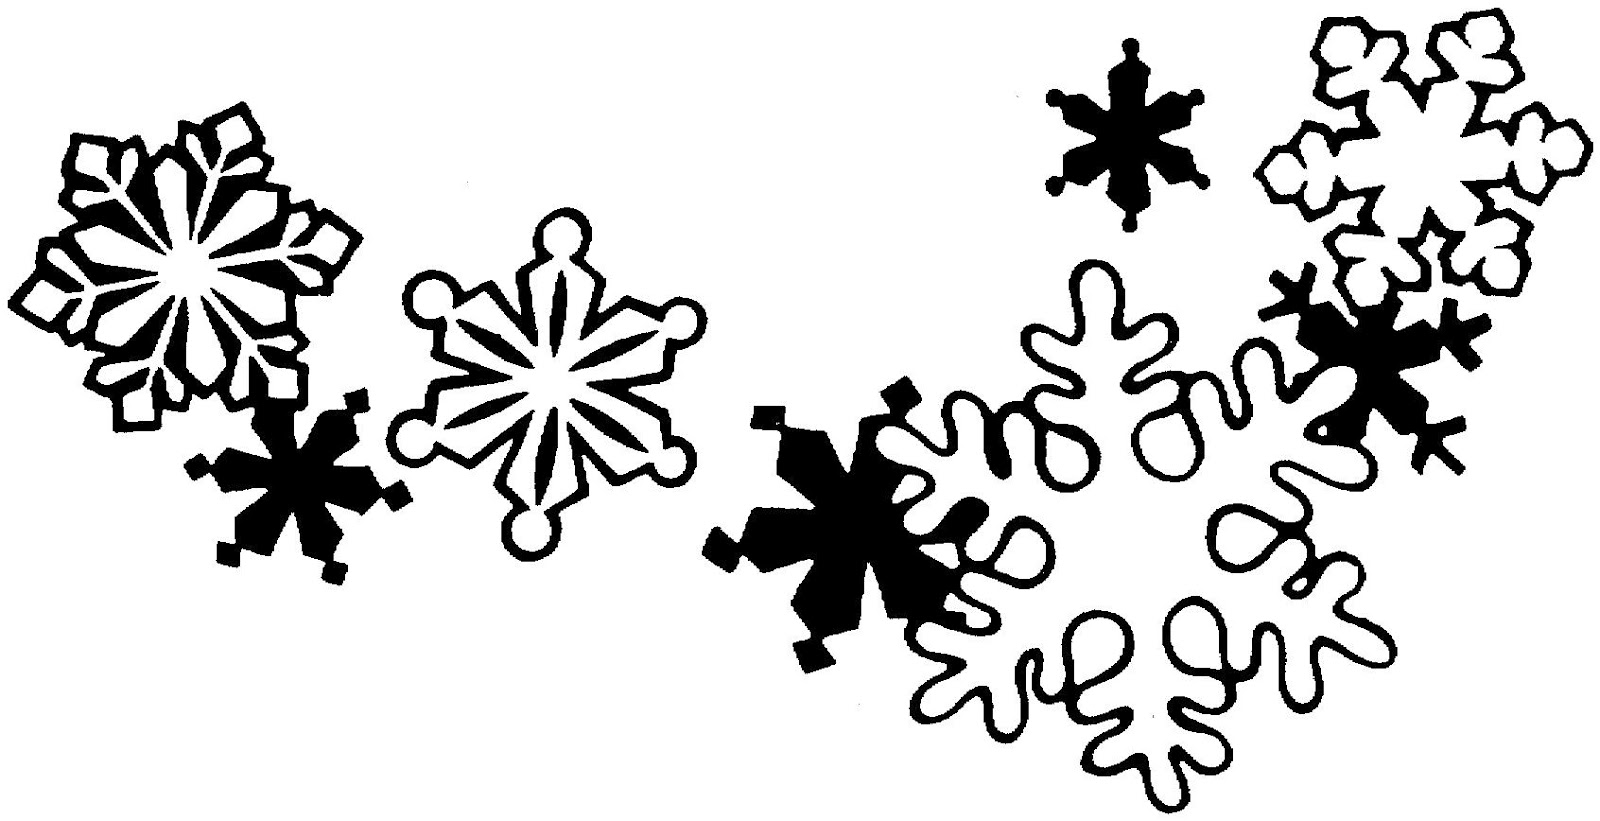 ornament20clipart20black20and20white - Free Christmas Clip Art Black And White